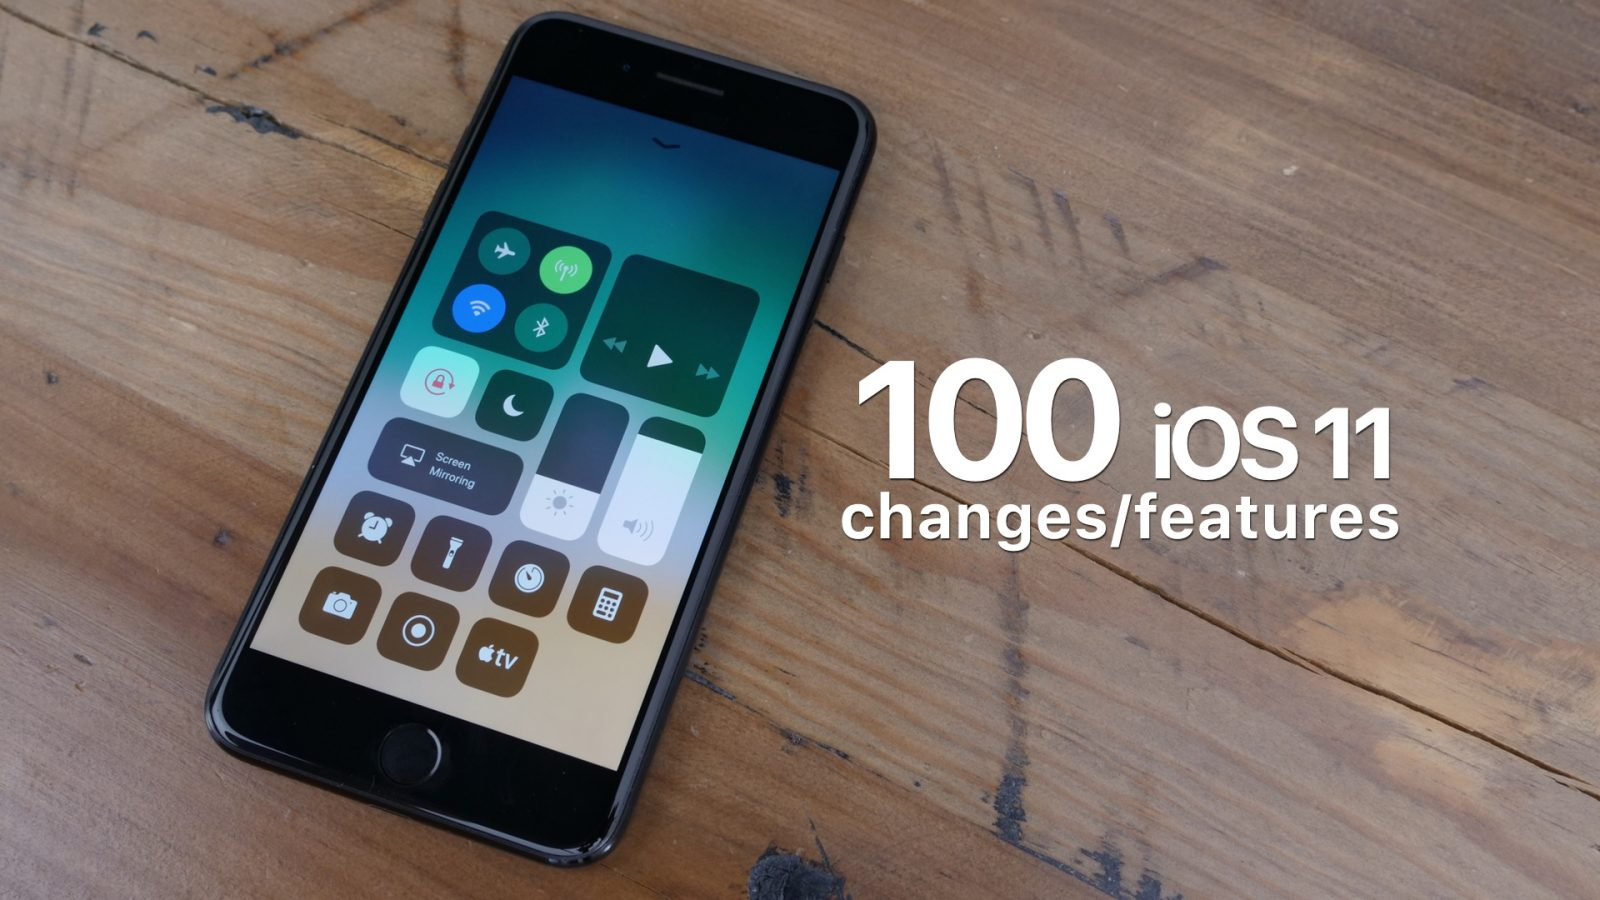 Whats New In Ios 11 Hands On With 100 Features And Changes Video